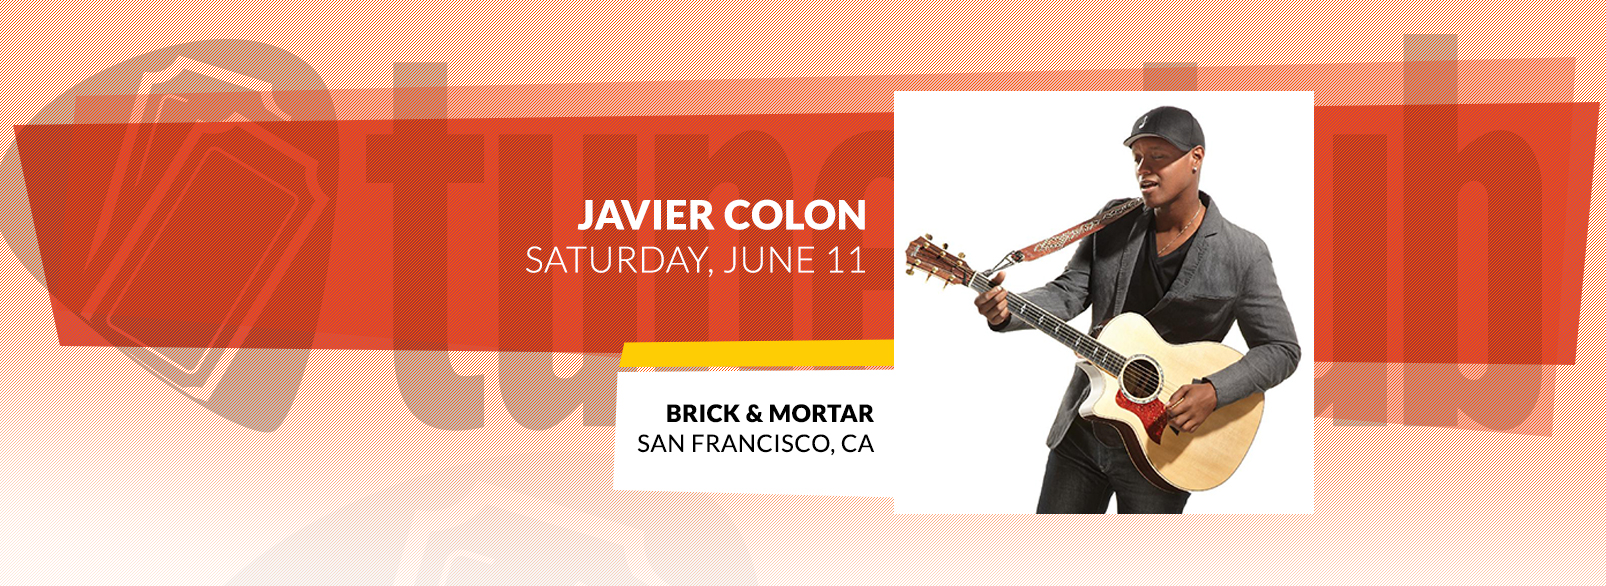 Javier Colon @ Brick & Mortar